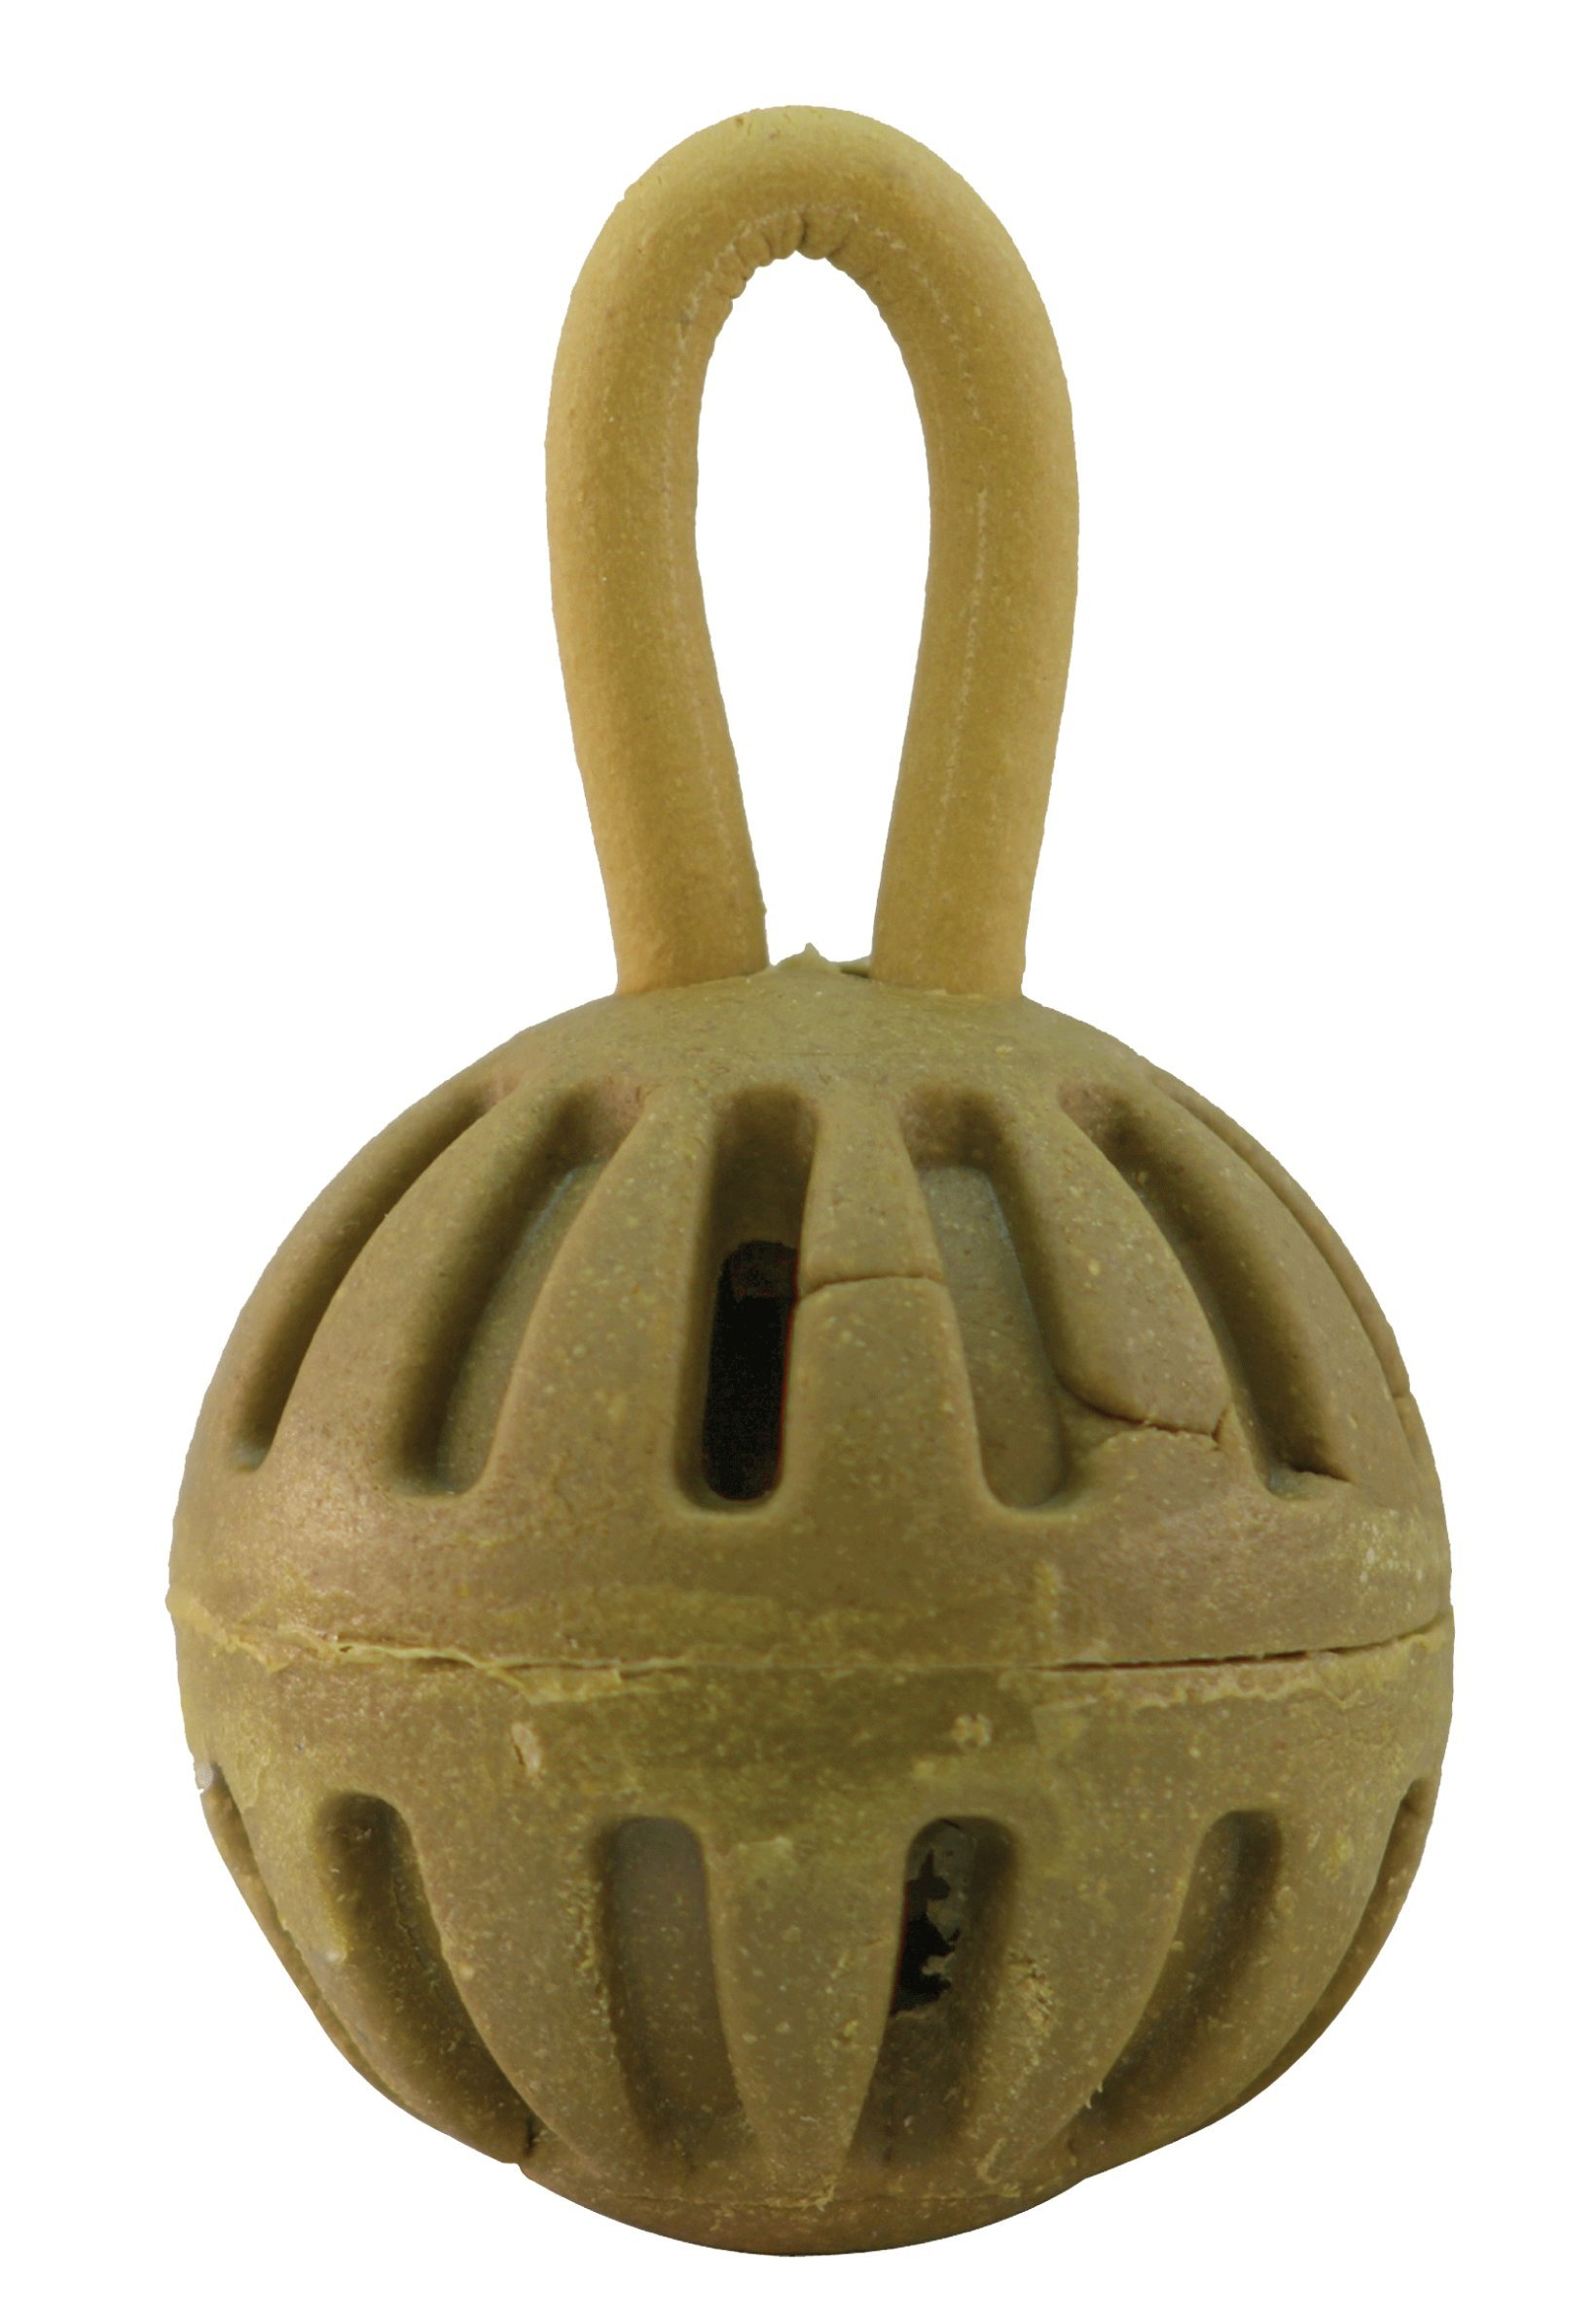 ZoomaChew 1 Count Chew-A-Ball, One Size